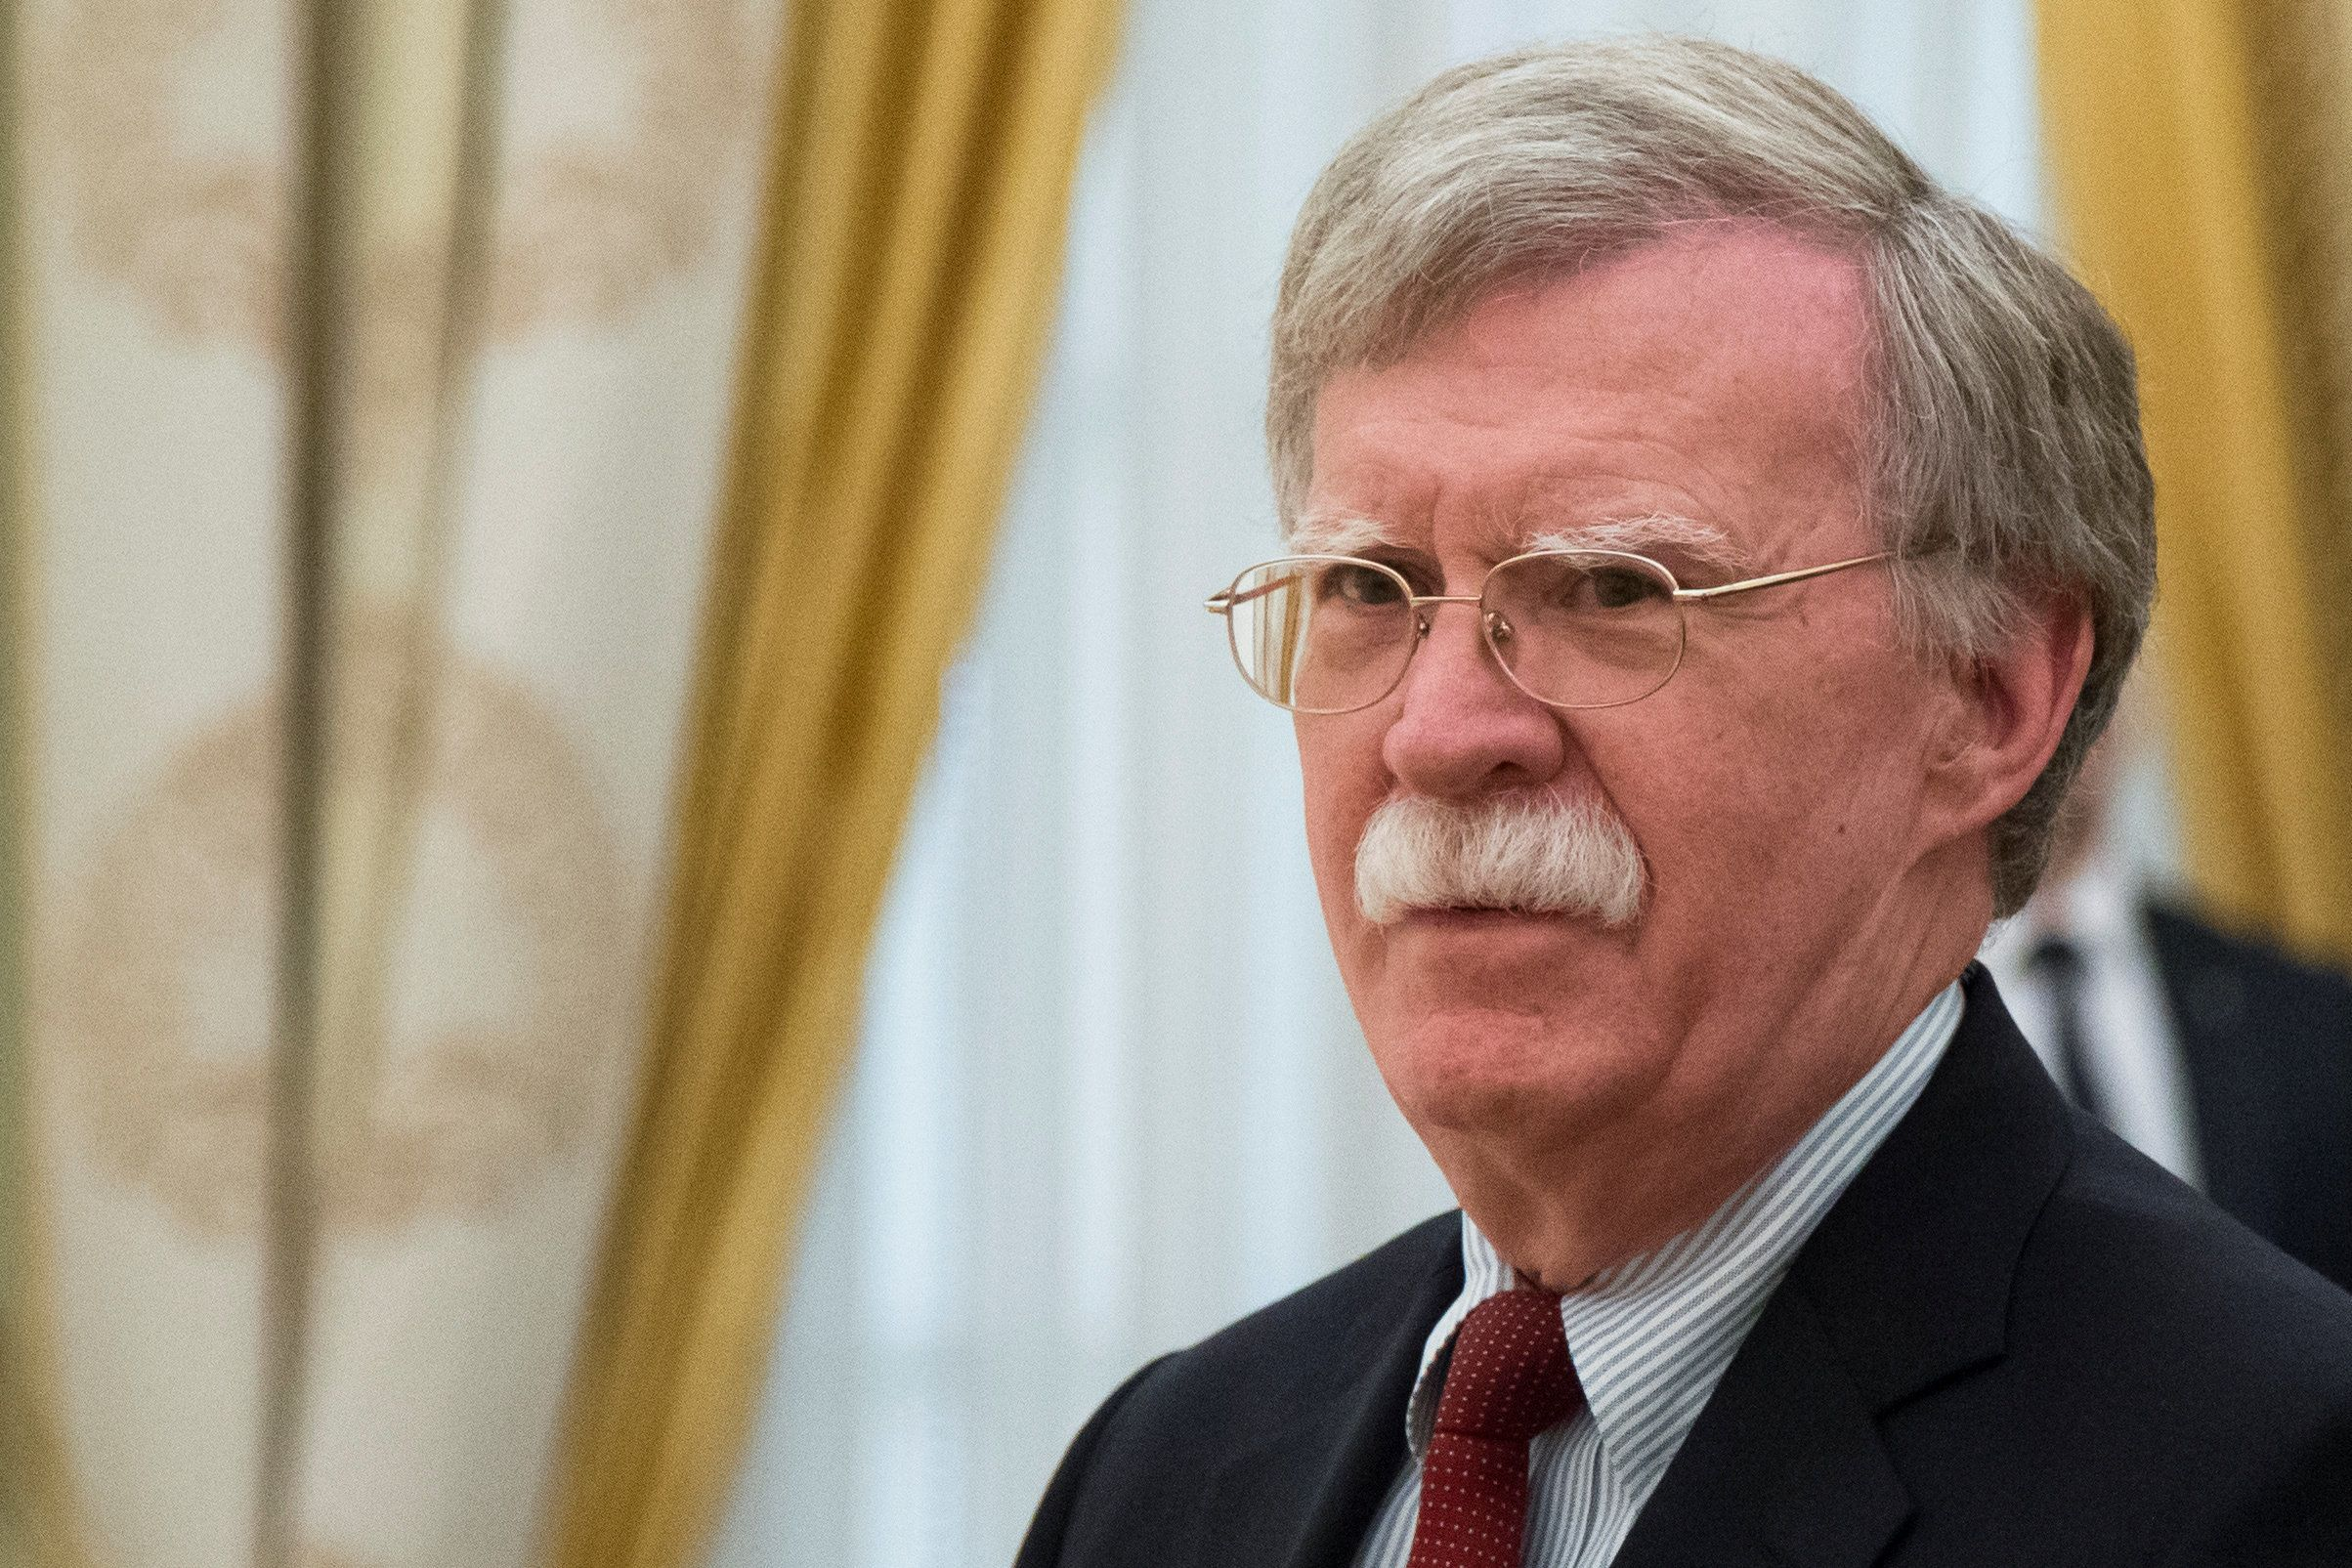 White House national security adviser John Bolton claimed that new indictments of 12 Russians in special counsel Robert